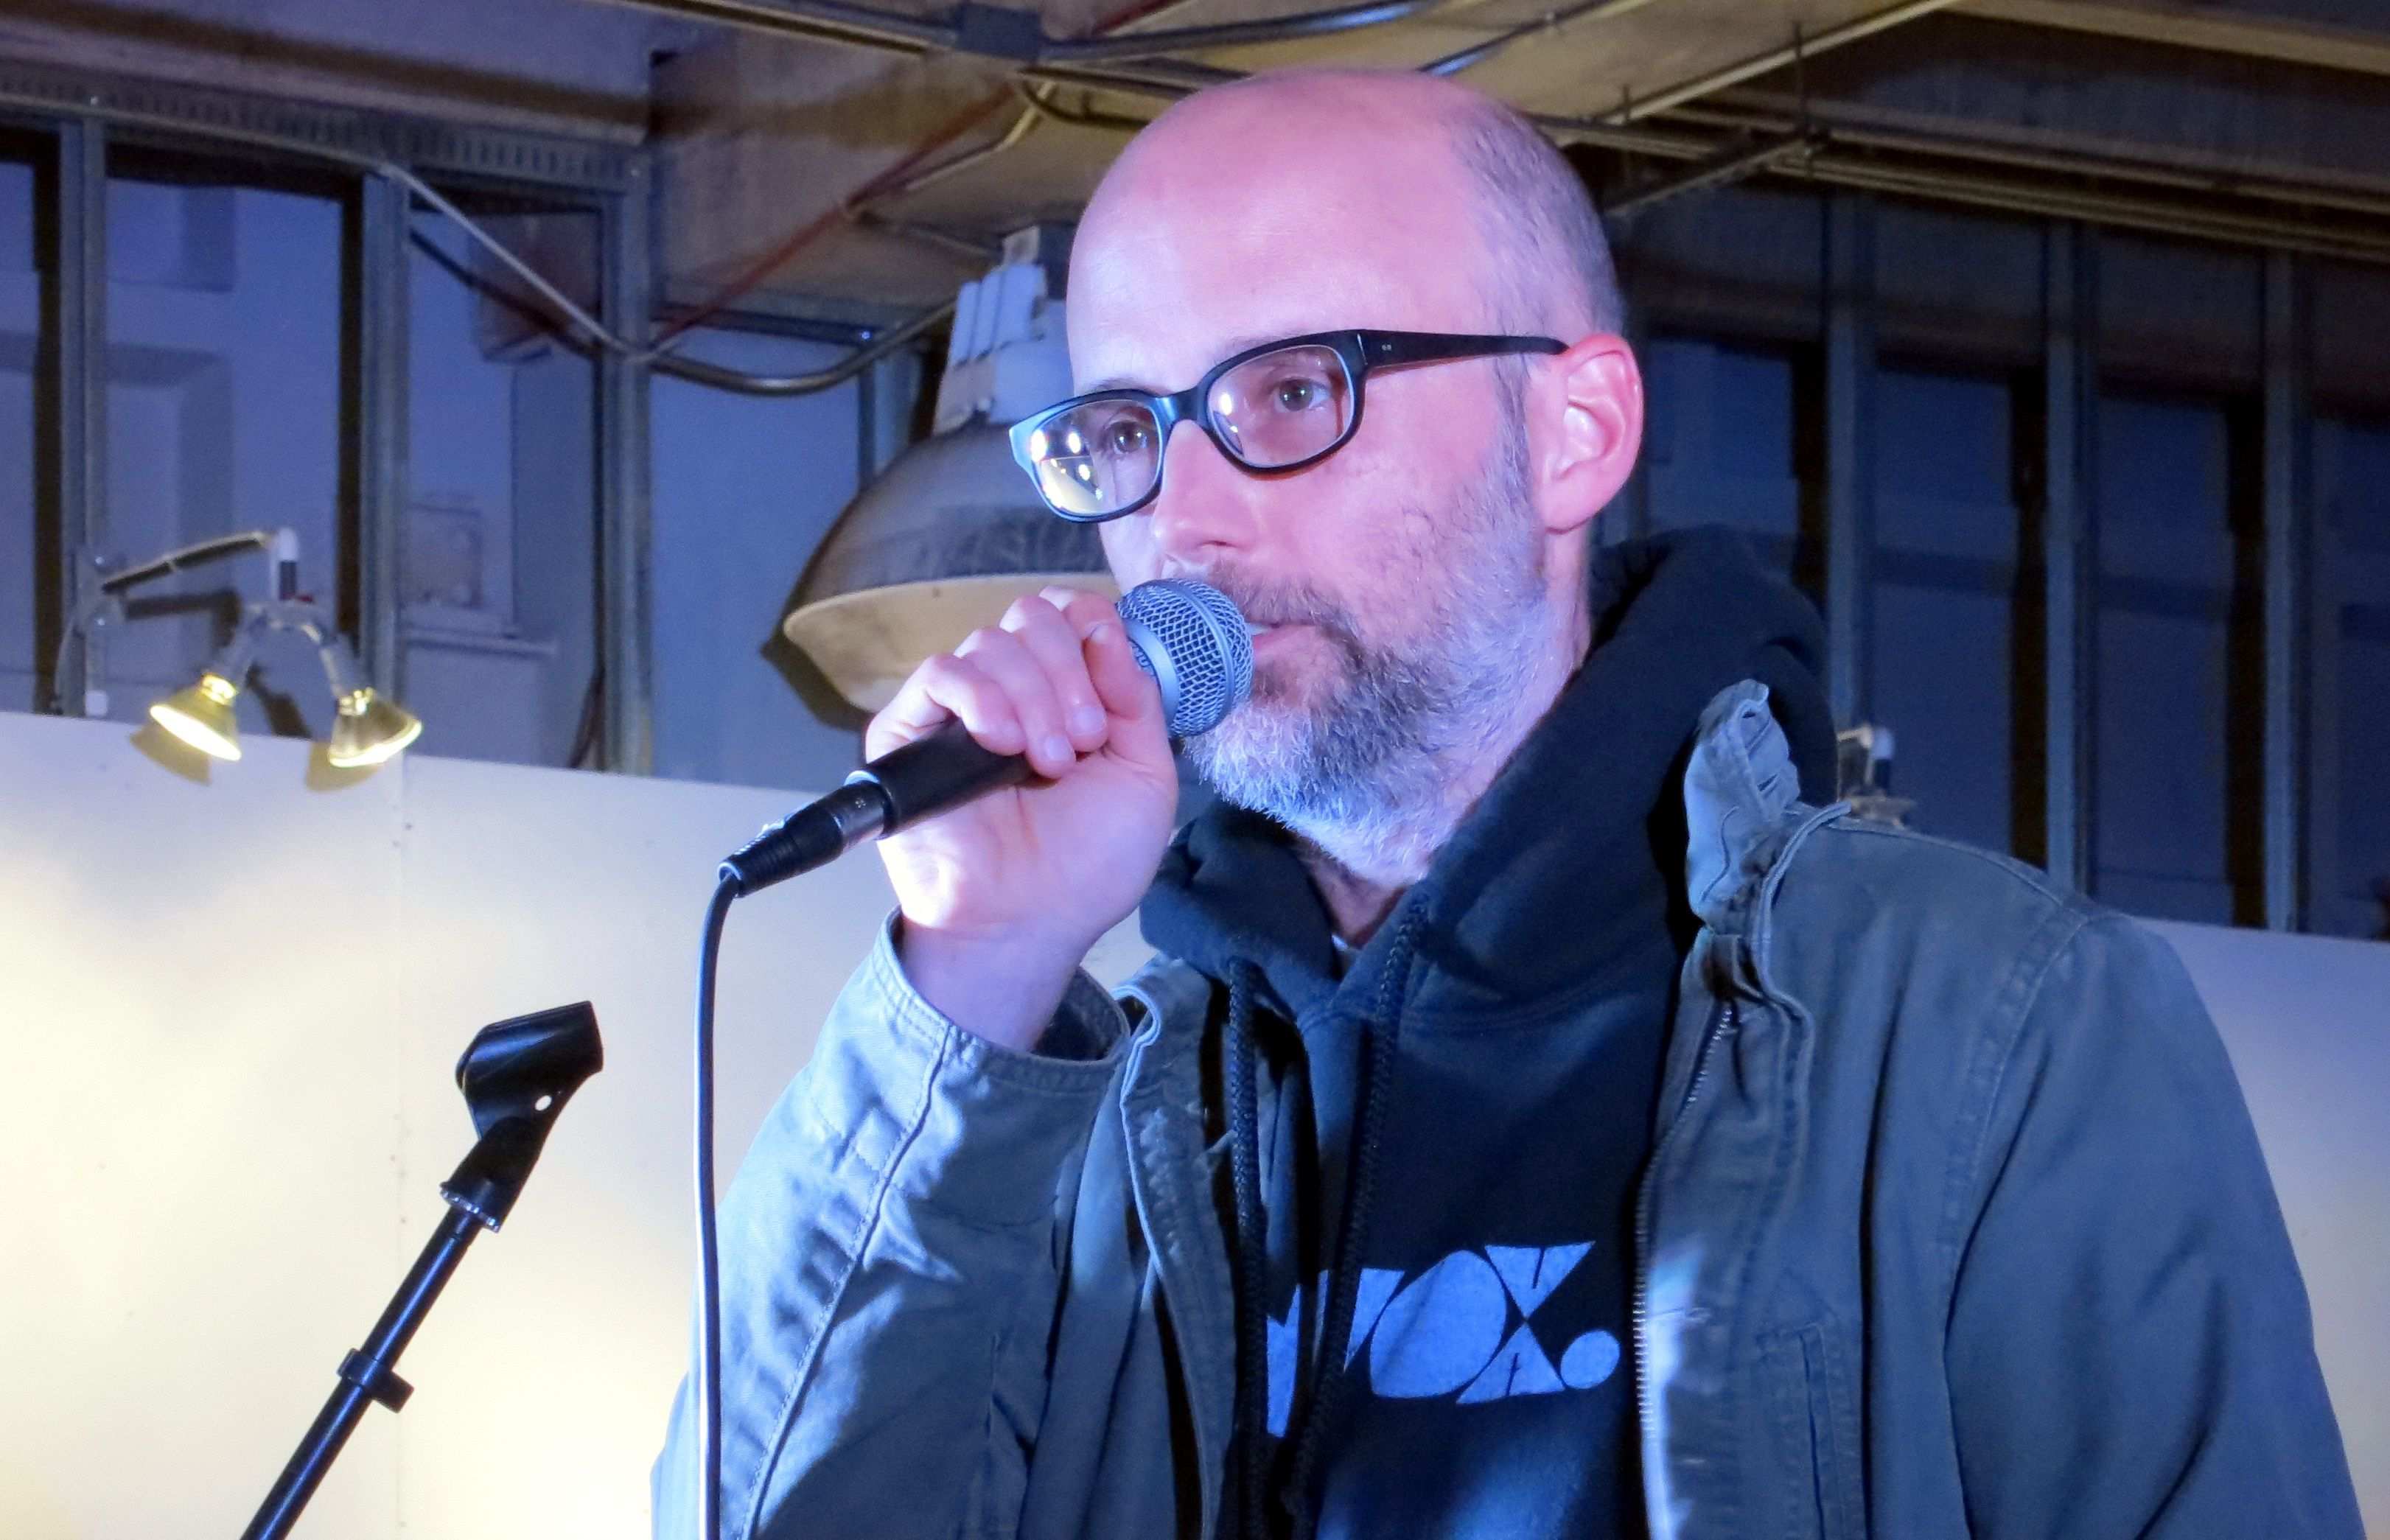 Moby speaking out about activism